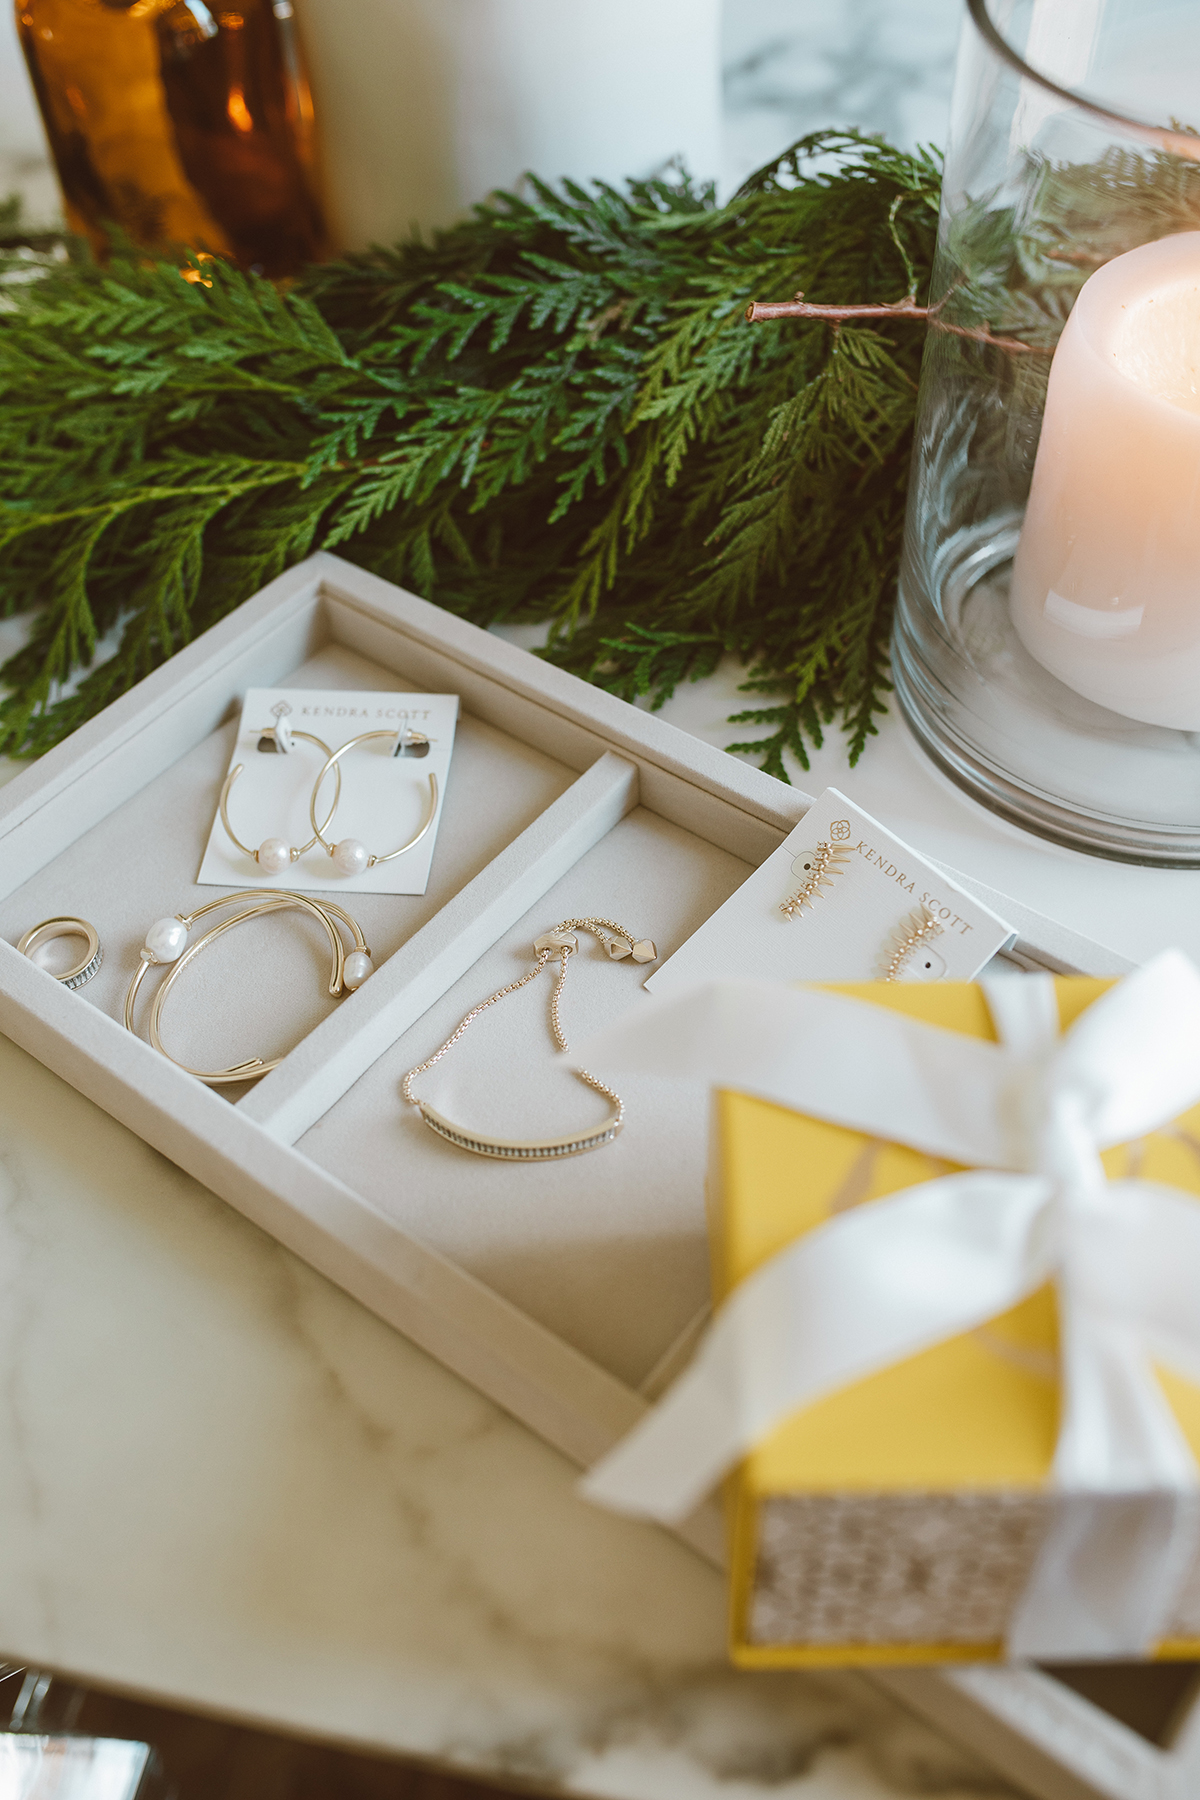 2019 Christmas gifts for her by Kendra Scott